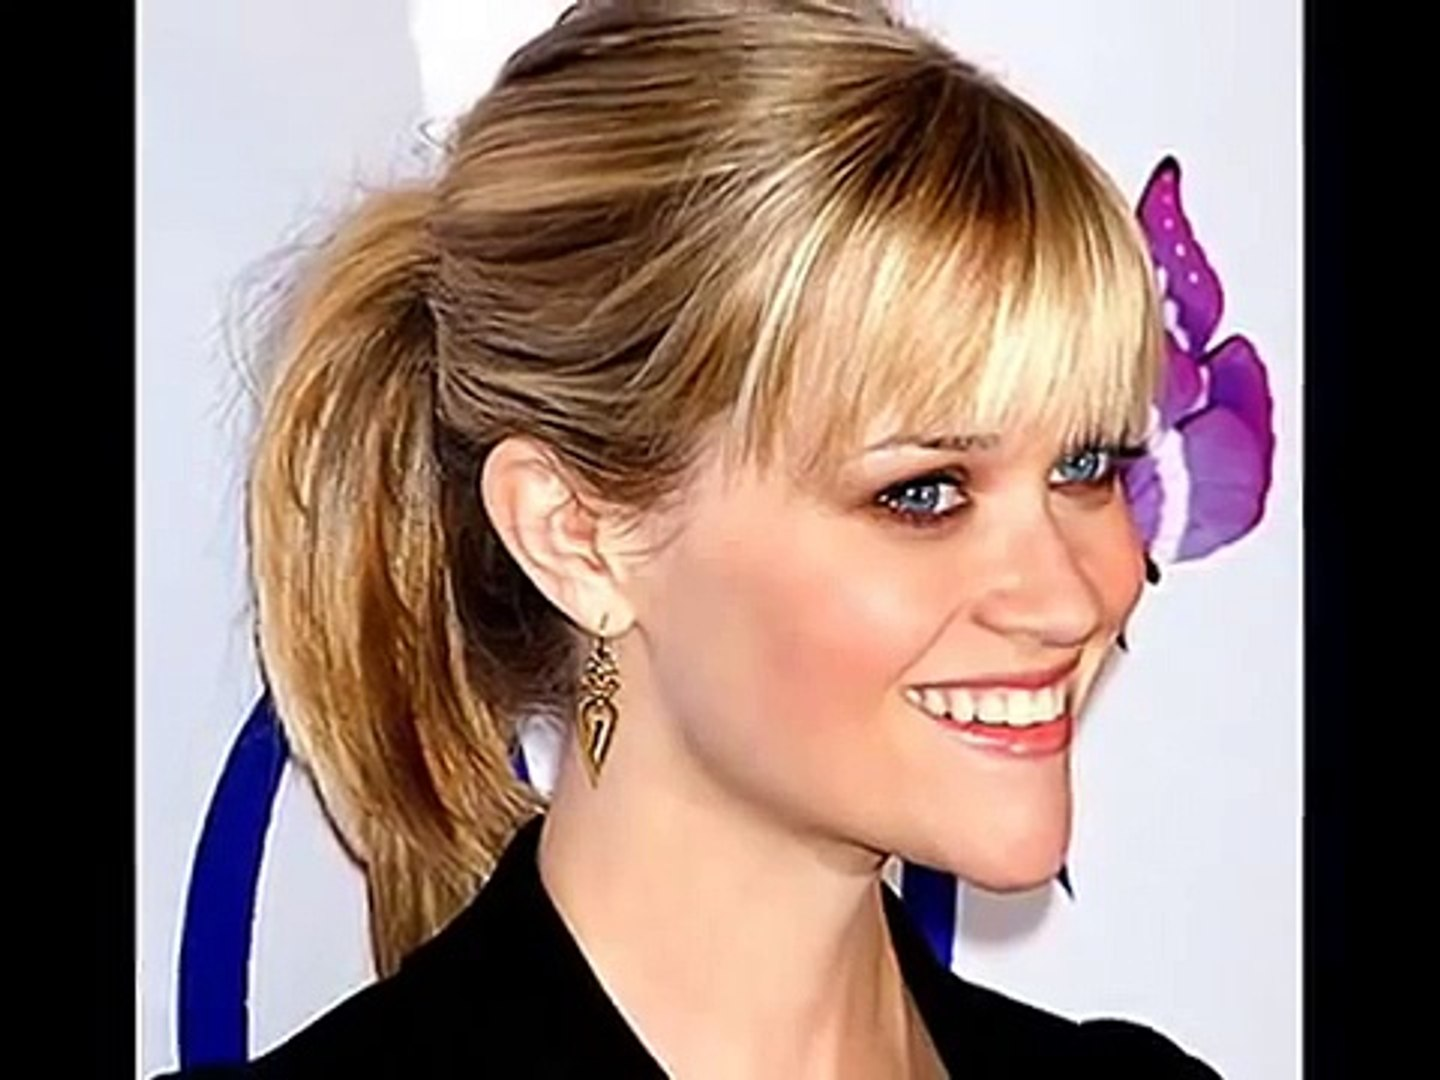 Simple Hairstyles 2014 - Best 10 Cute Hairstyles For School 2014 New Hairstyles for 2014